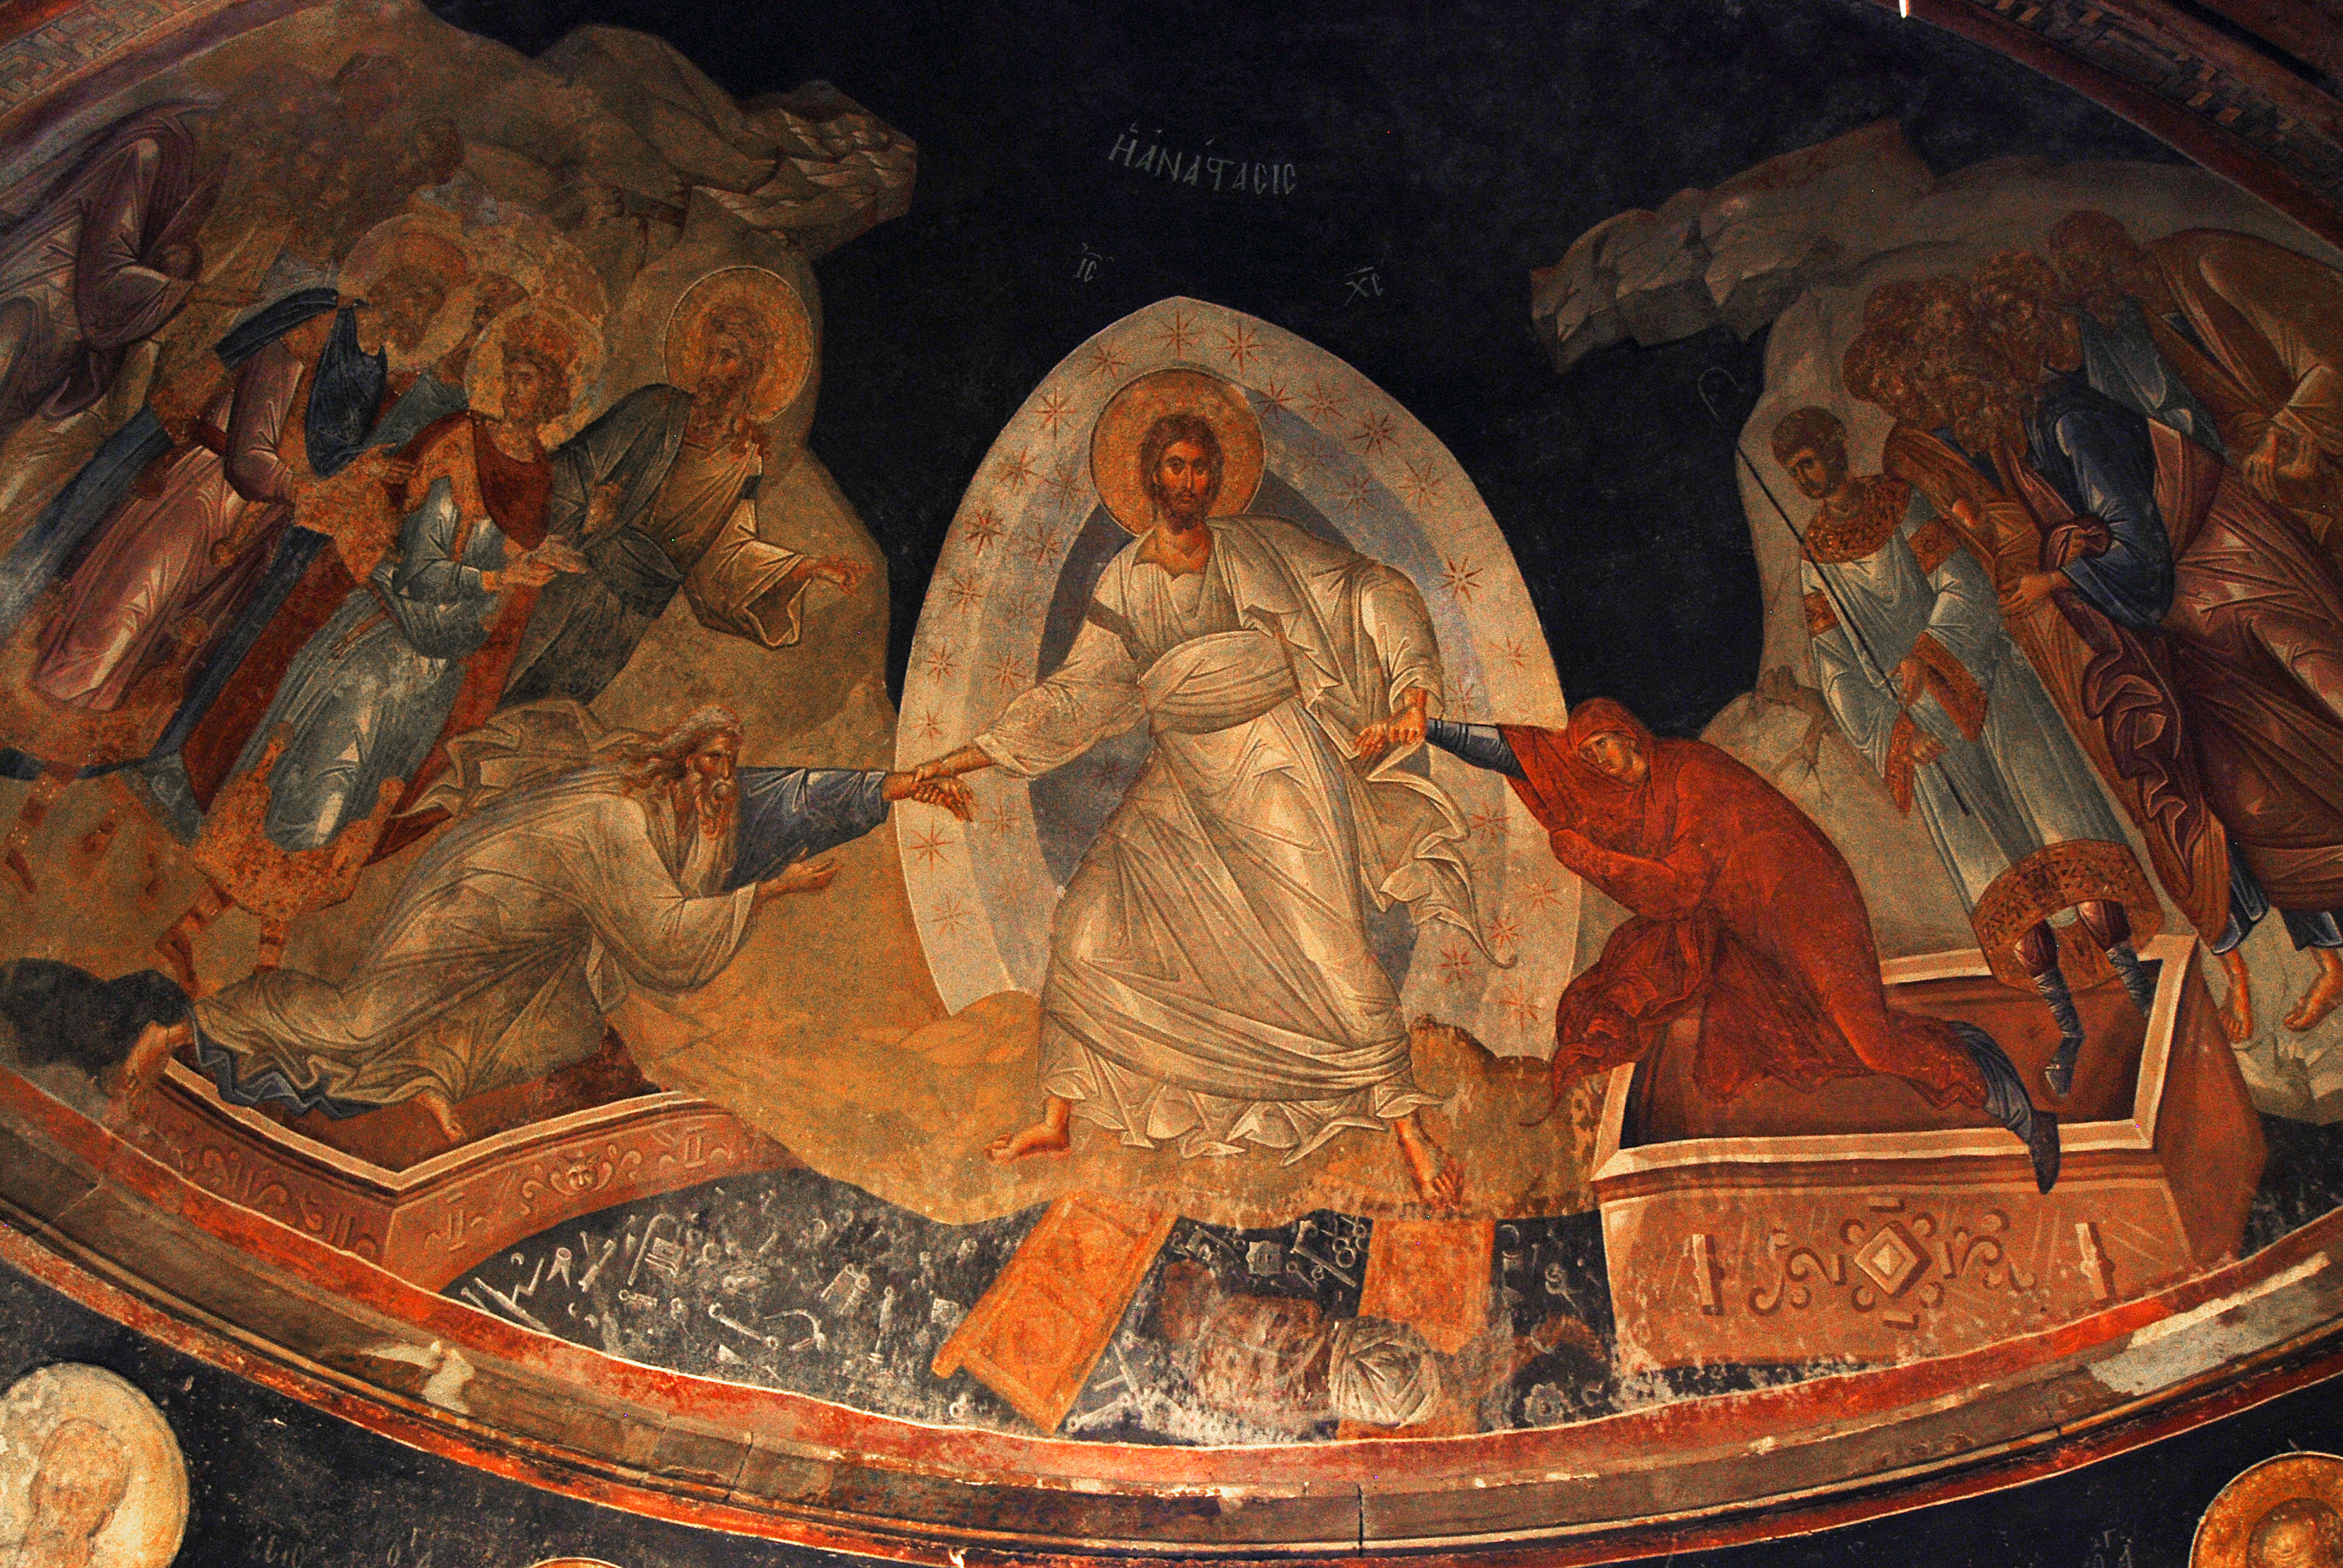 File:Anastasis fresco (Chora Church).jpg - Wikimedia Commons